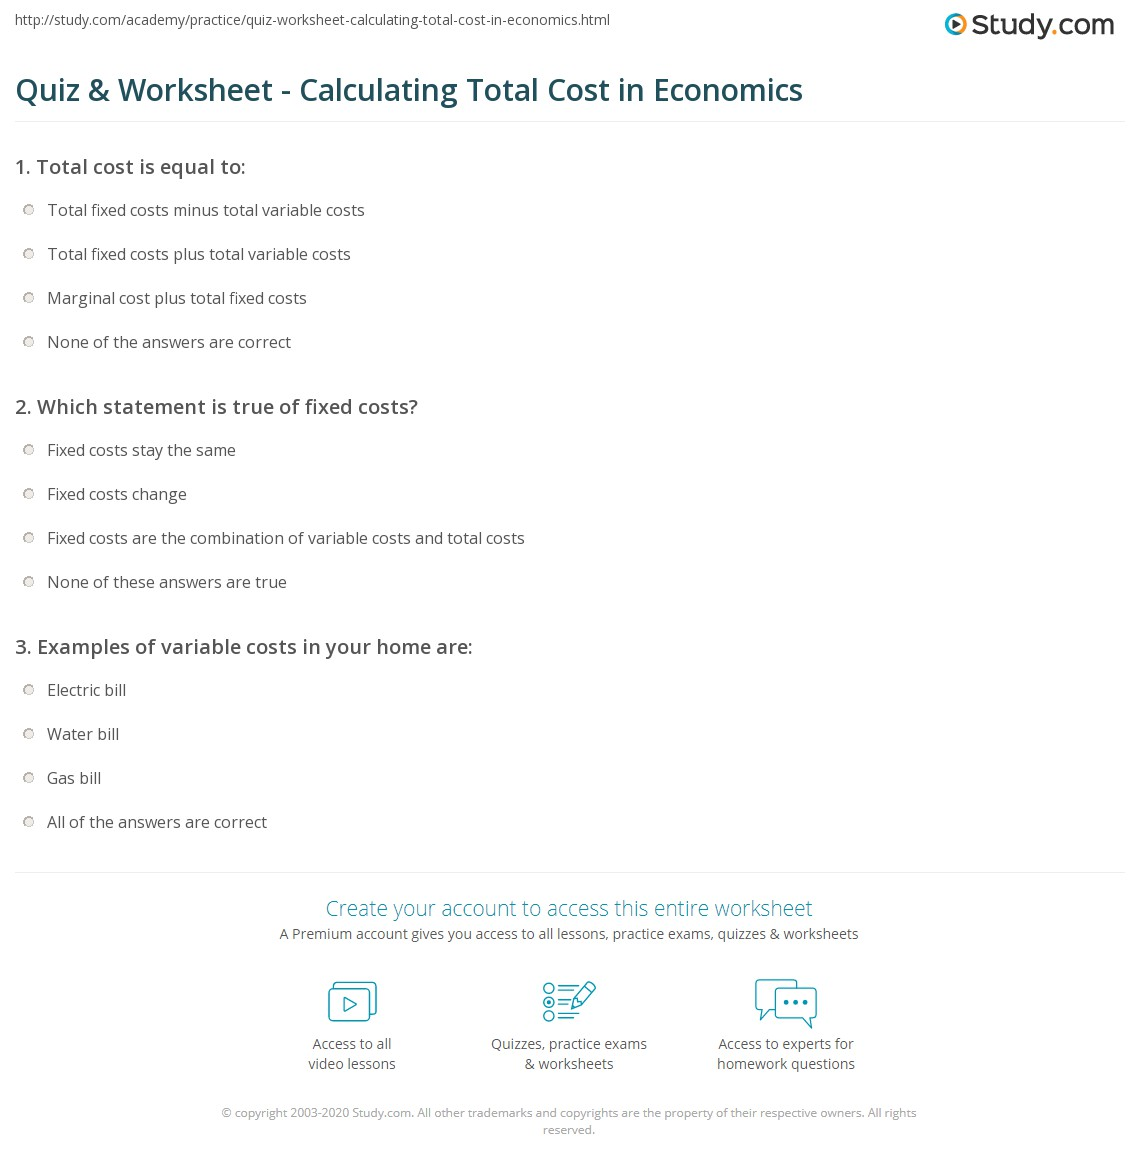 Workbooks home ec worksheets : Quiz & Worksheet - Calculating Total Cost in Economics | Study.com